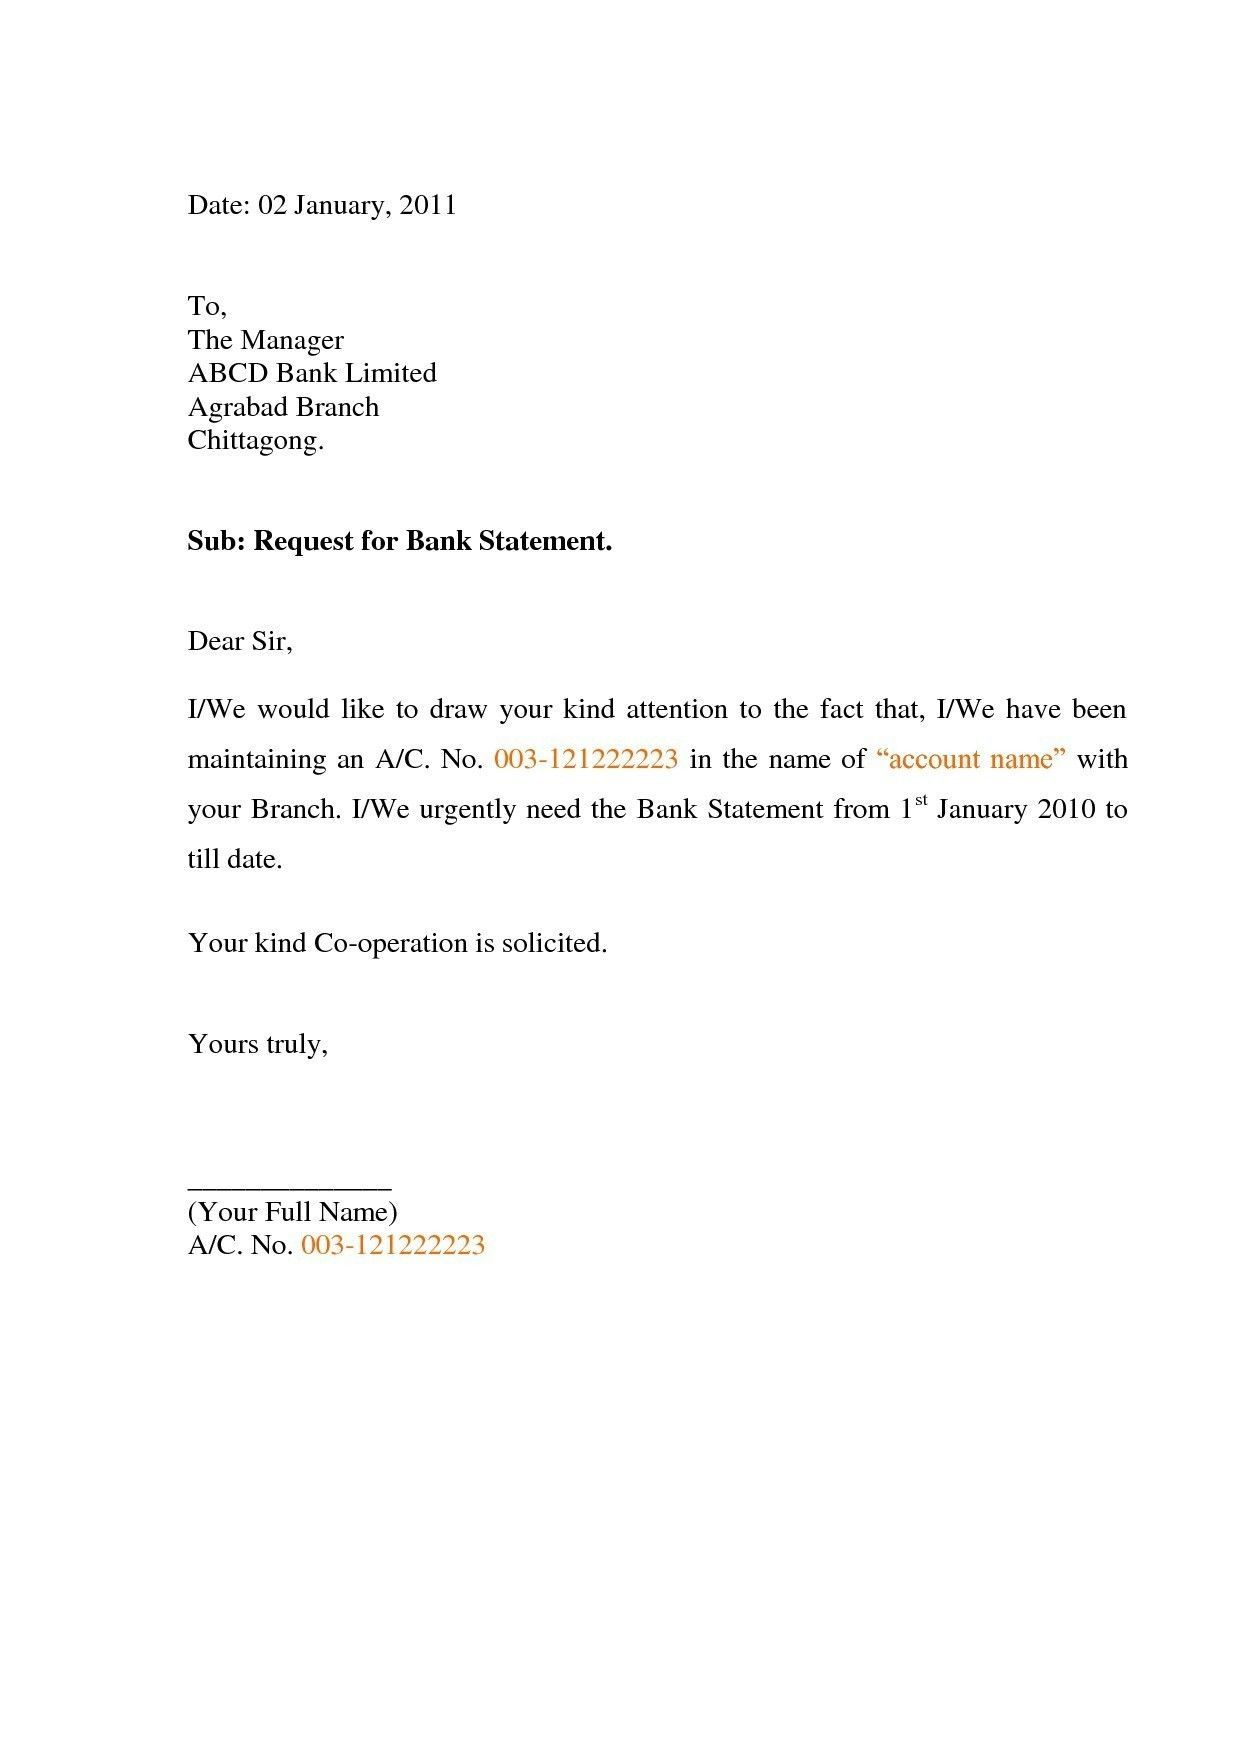 Relieving Letter Format In Ms Word New Request Letter For Bank